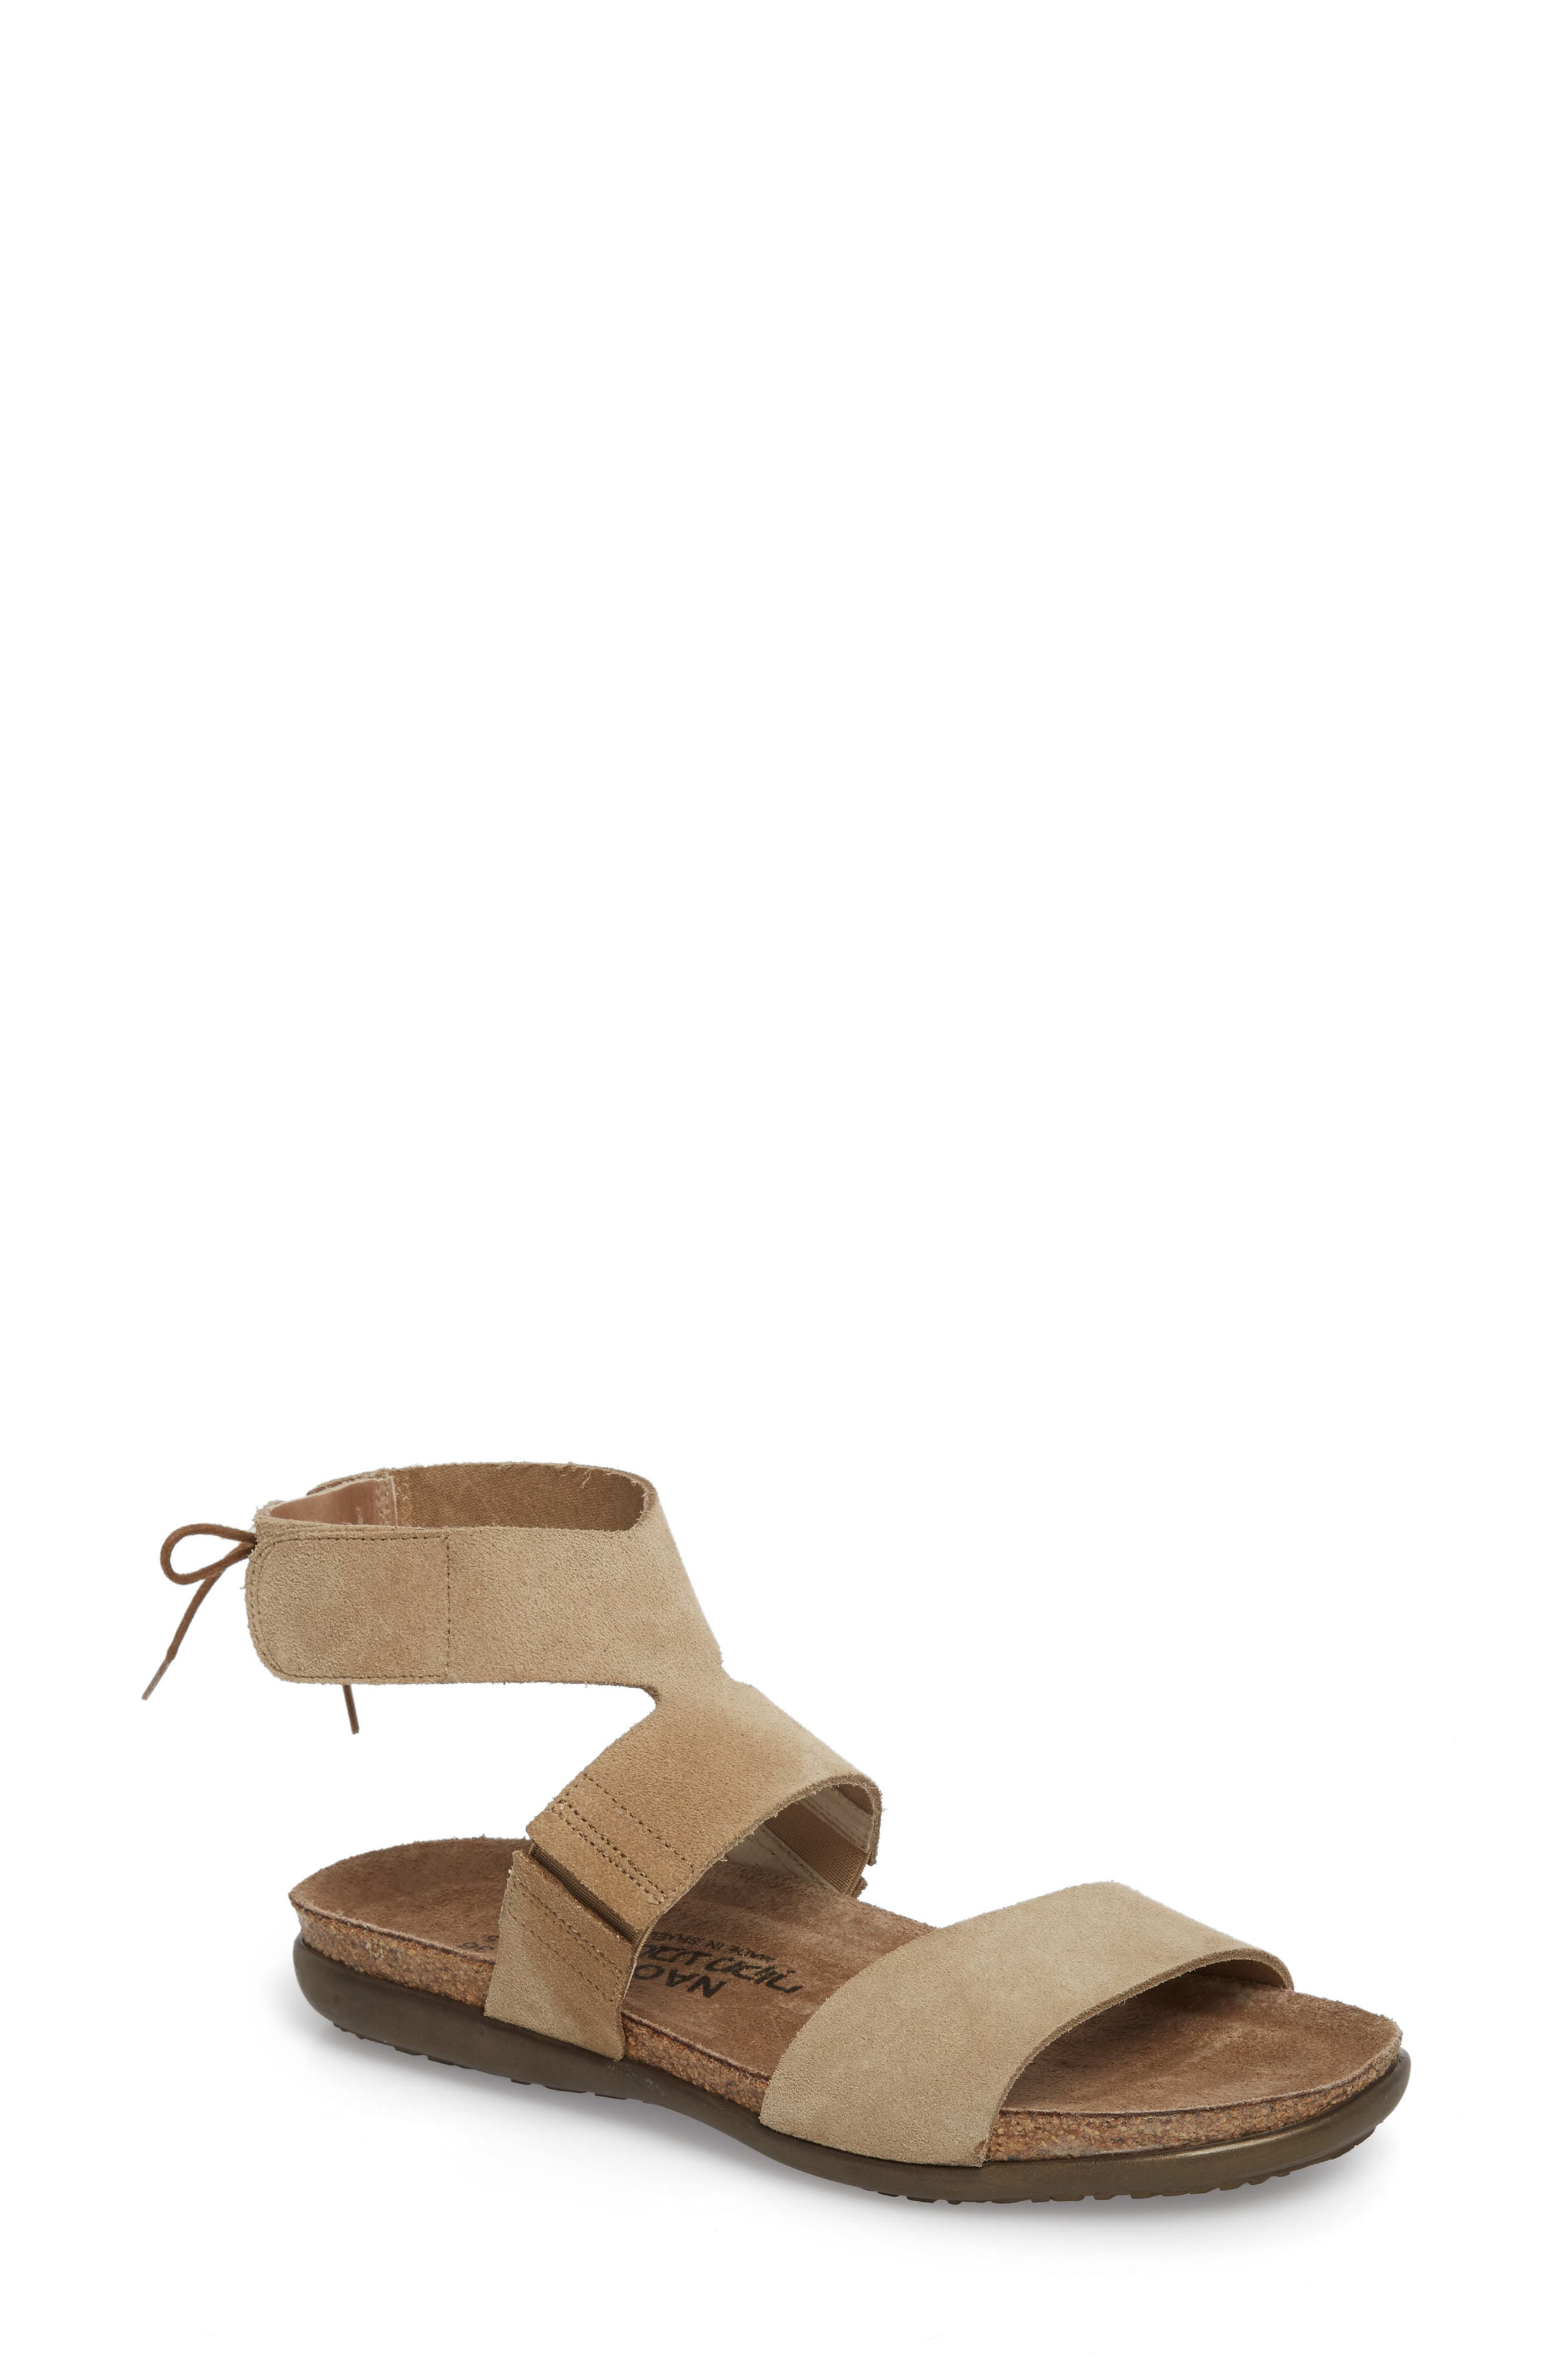 Larissa Ankle Strap Sandal,                             Main thumbnail 3, color,